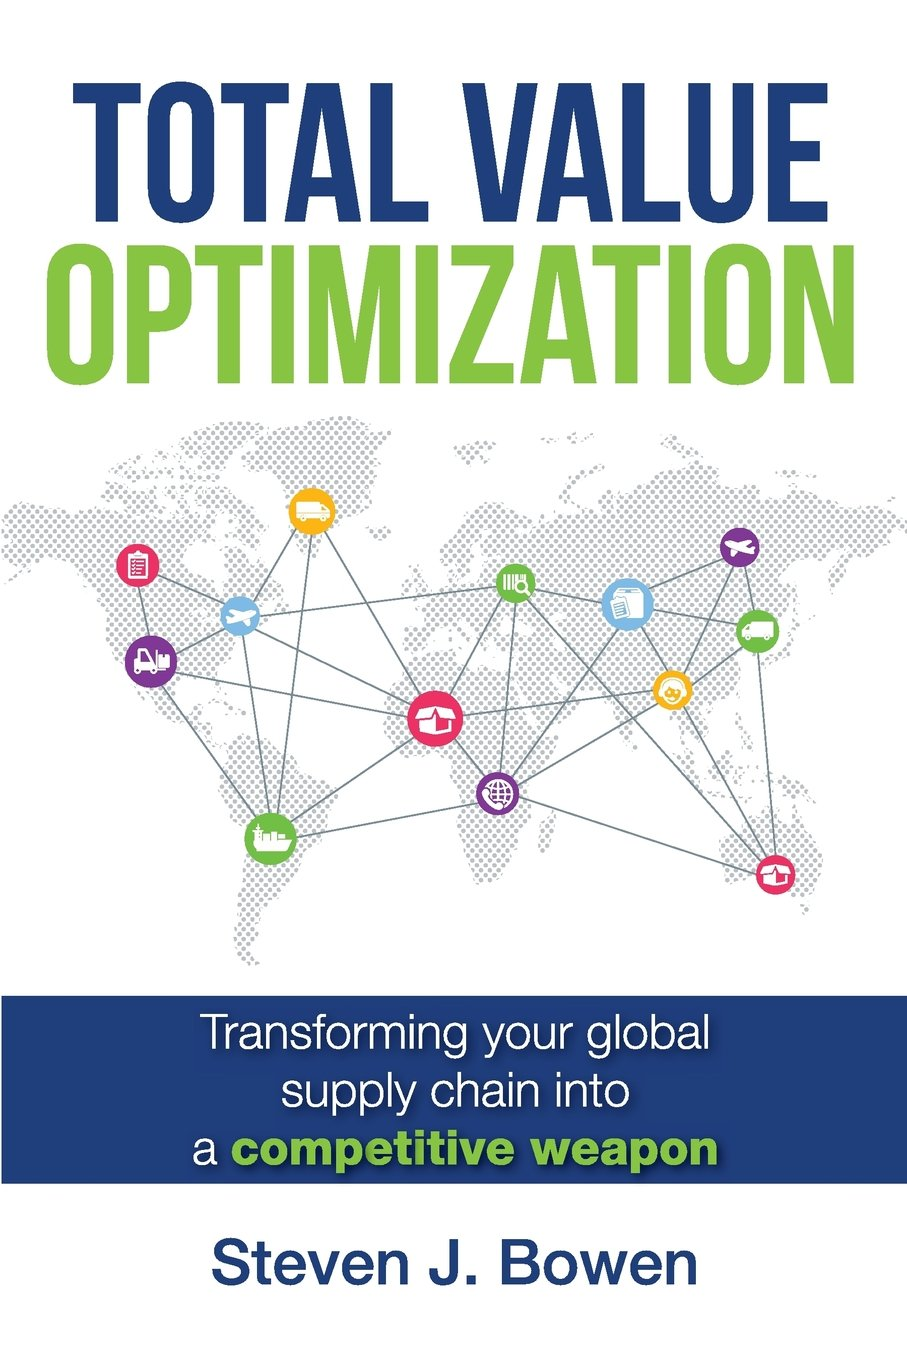 Total Value Optimization: Transforming Your Global Supply Chain Into a Competitive Weapon